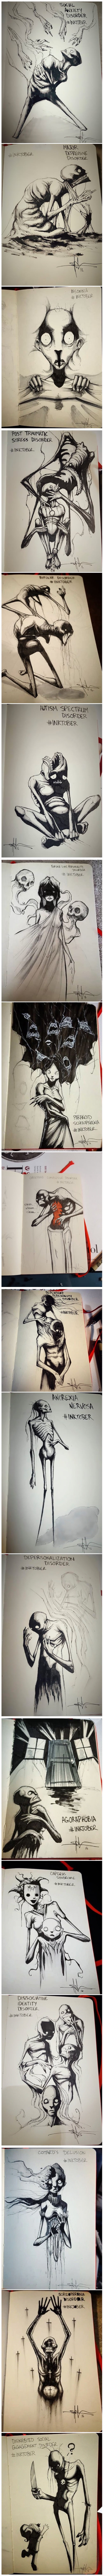 Artist With Autism Illustrates >> Artist Shawn Coss Illustrates Mental Illness And Disorders 9gag